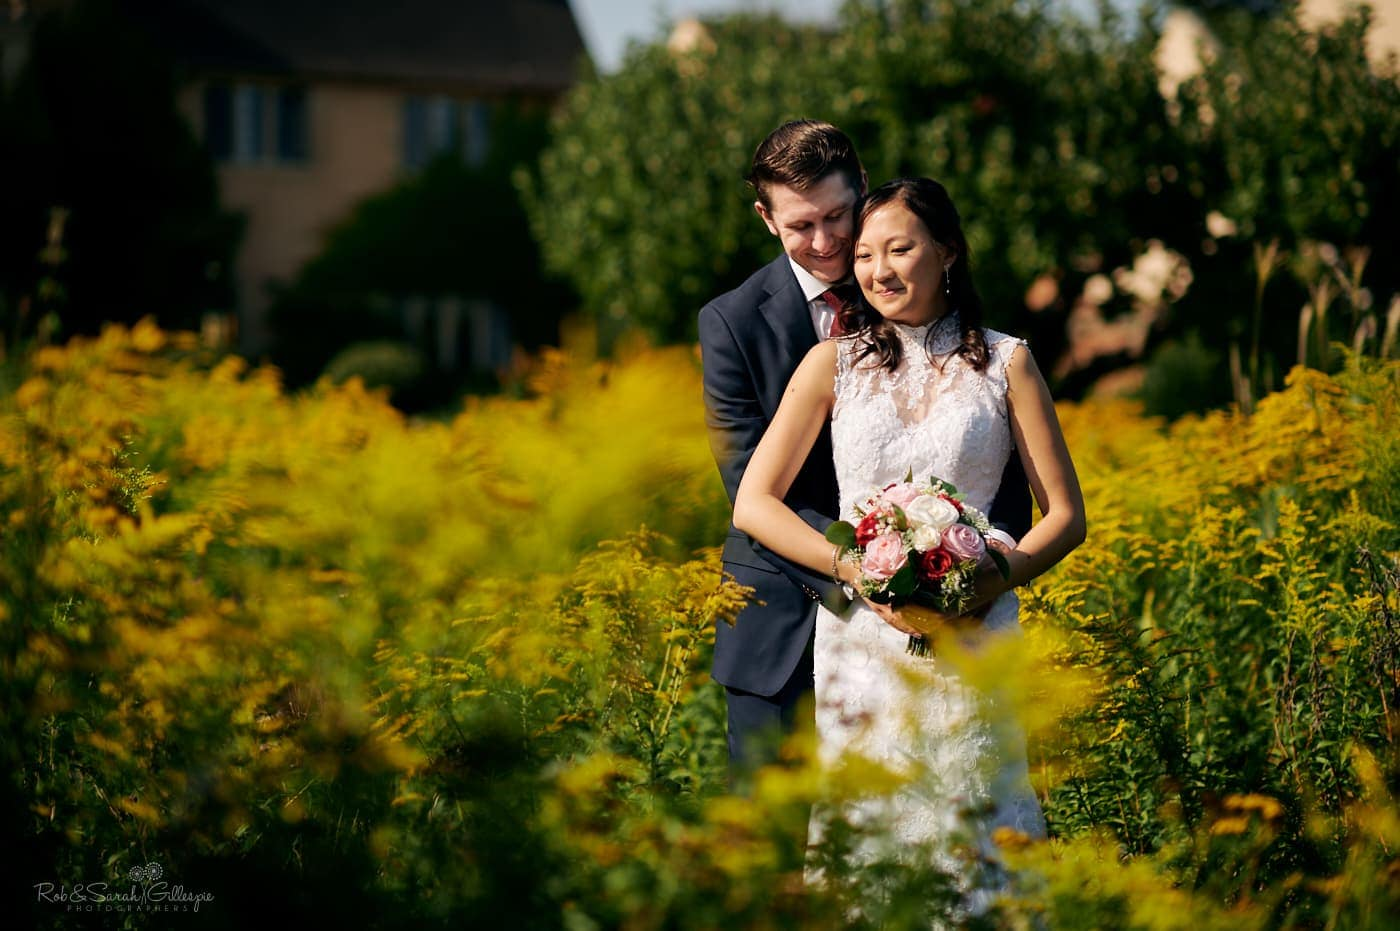 Newly married bride and groom cuddled up in beautiful gardens on sunny day